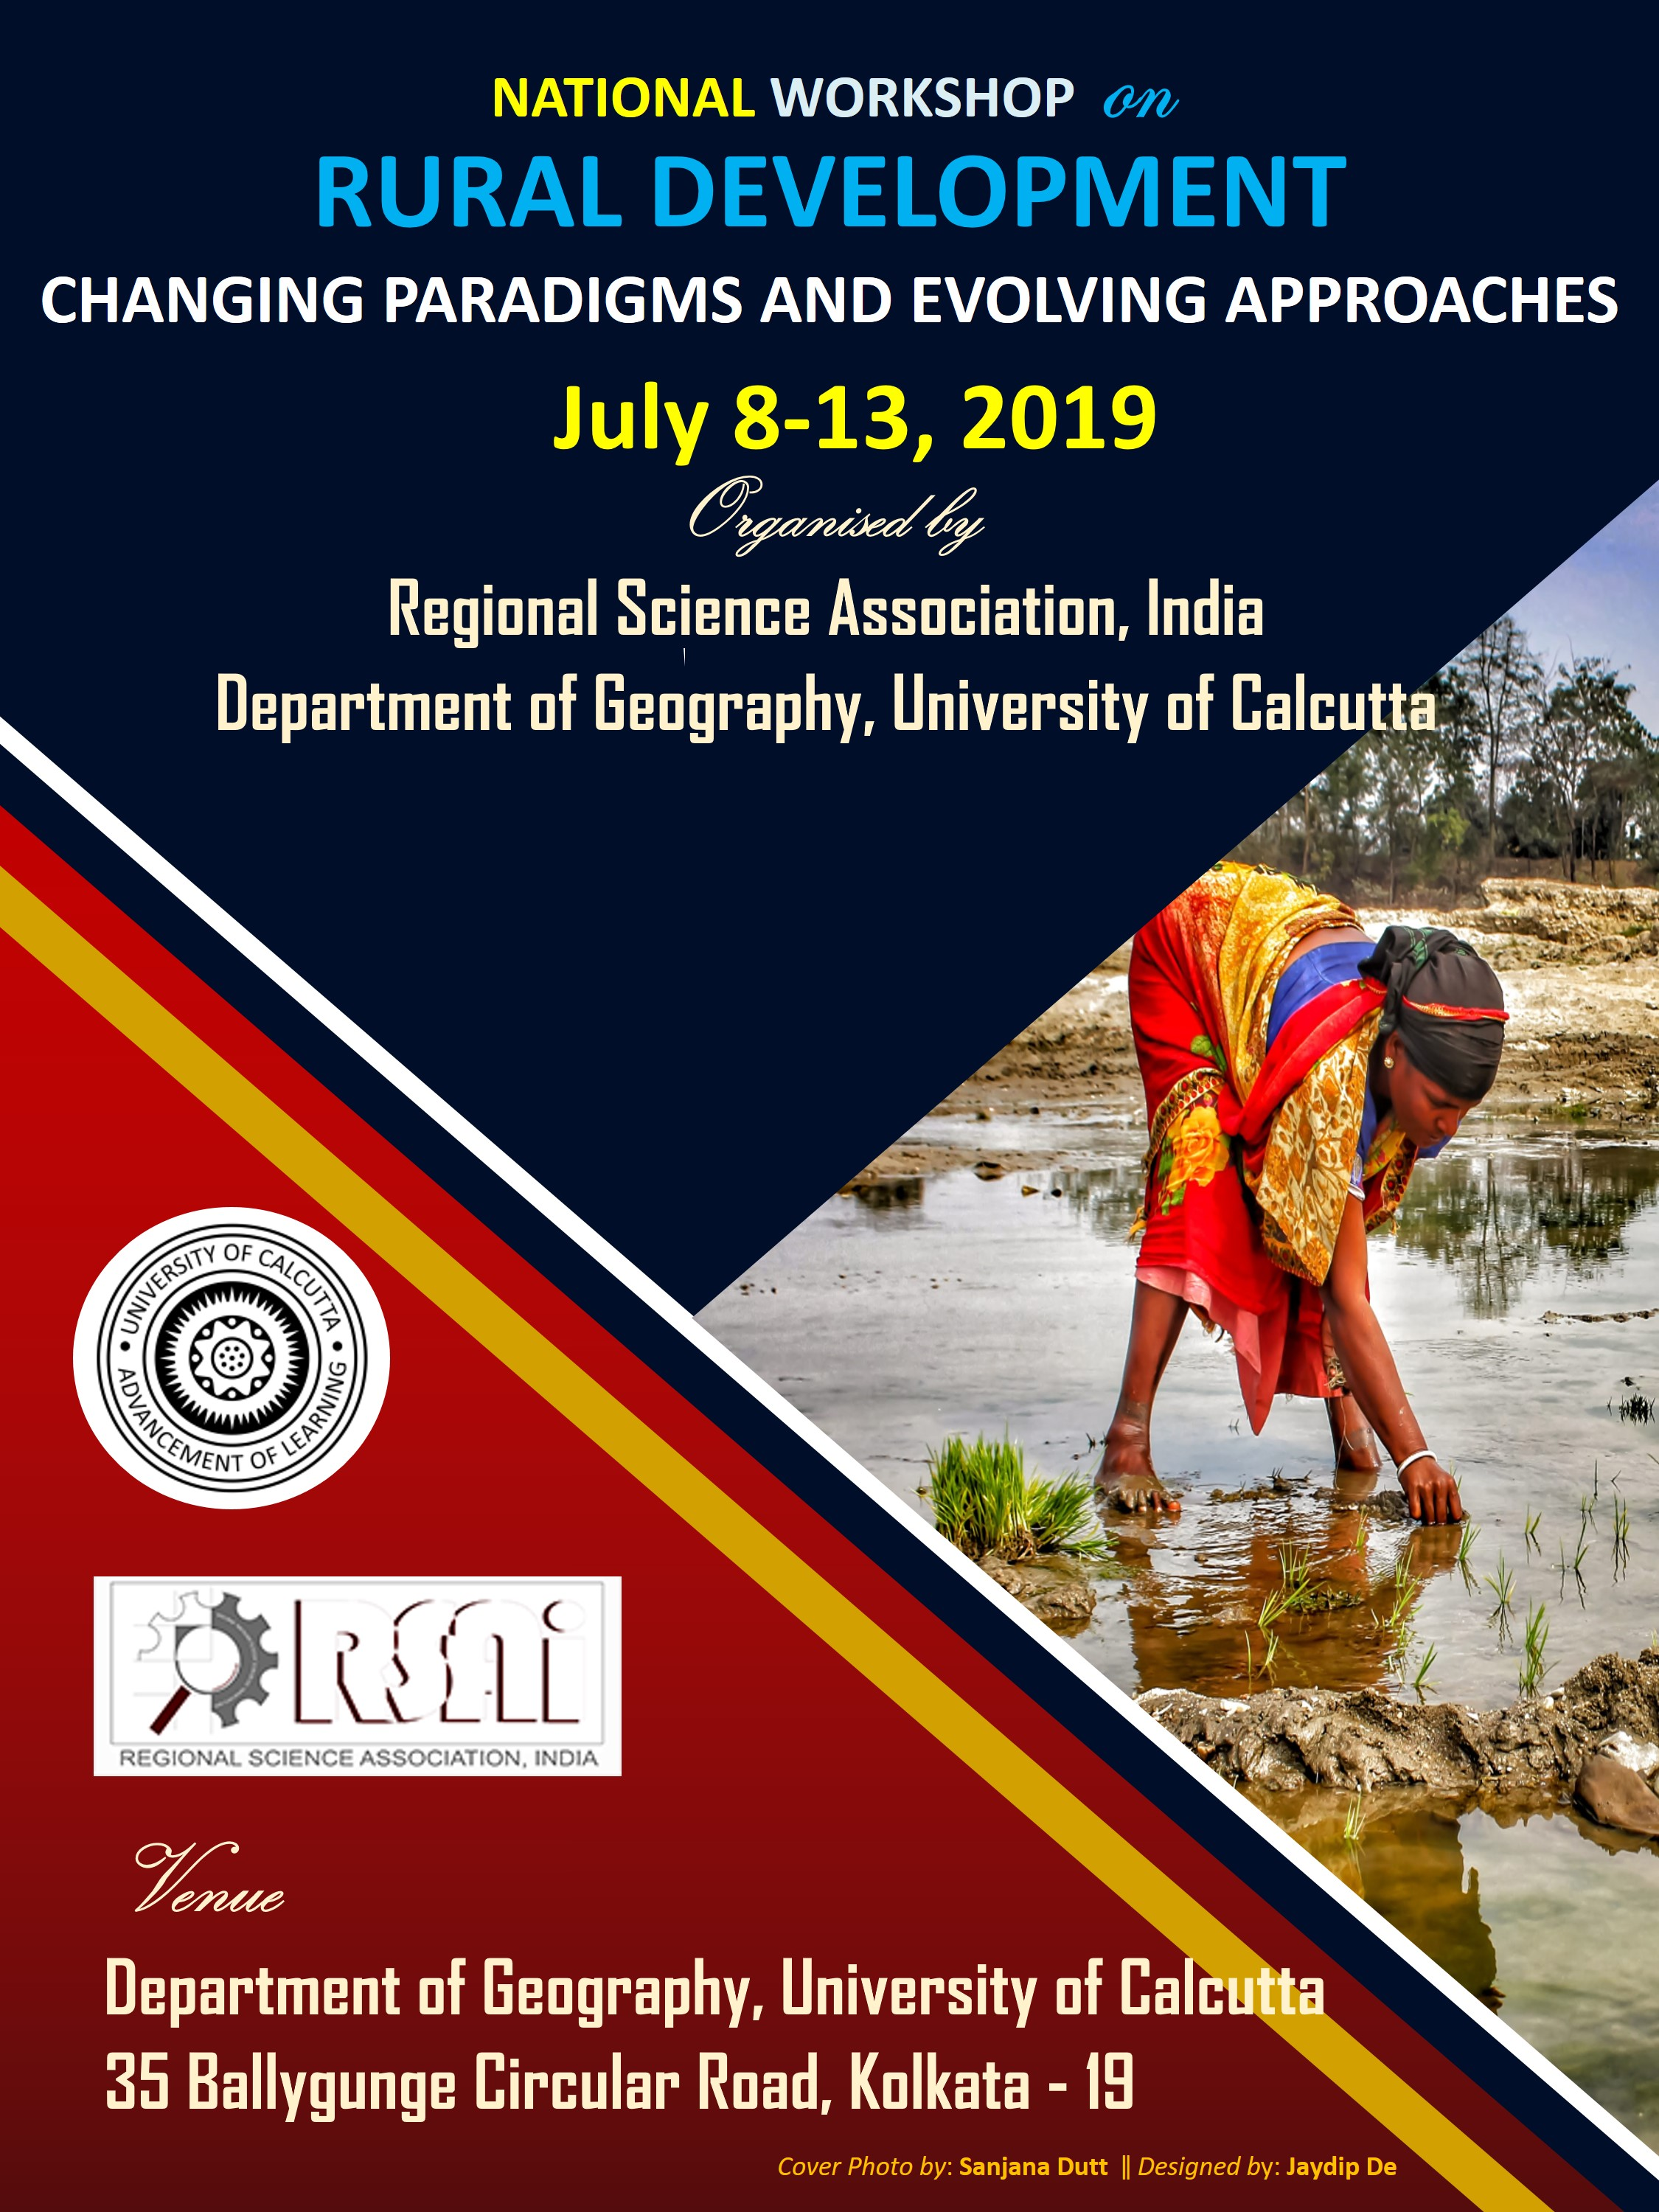 NATIONAL WORKSHOP on RURAL DEVELOPMENT CHANGING PARADIGMS AND EVOLVING APPROACHES